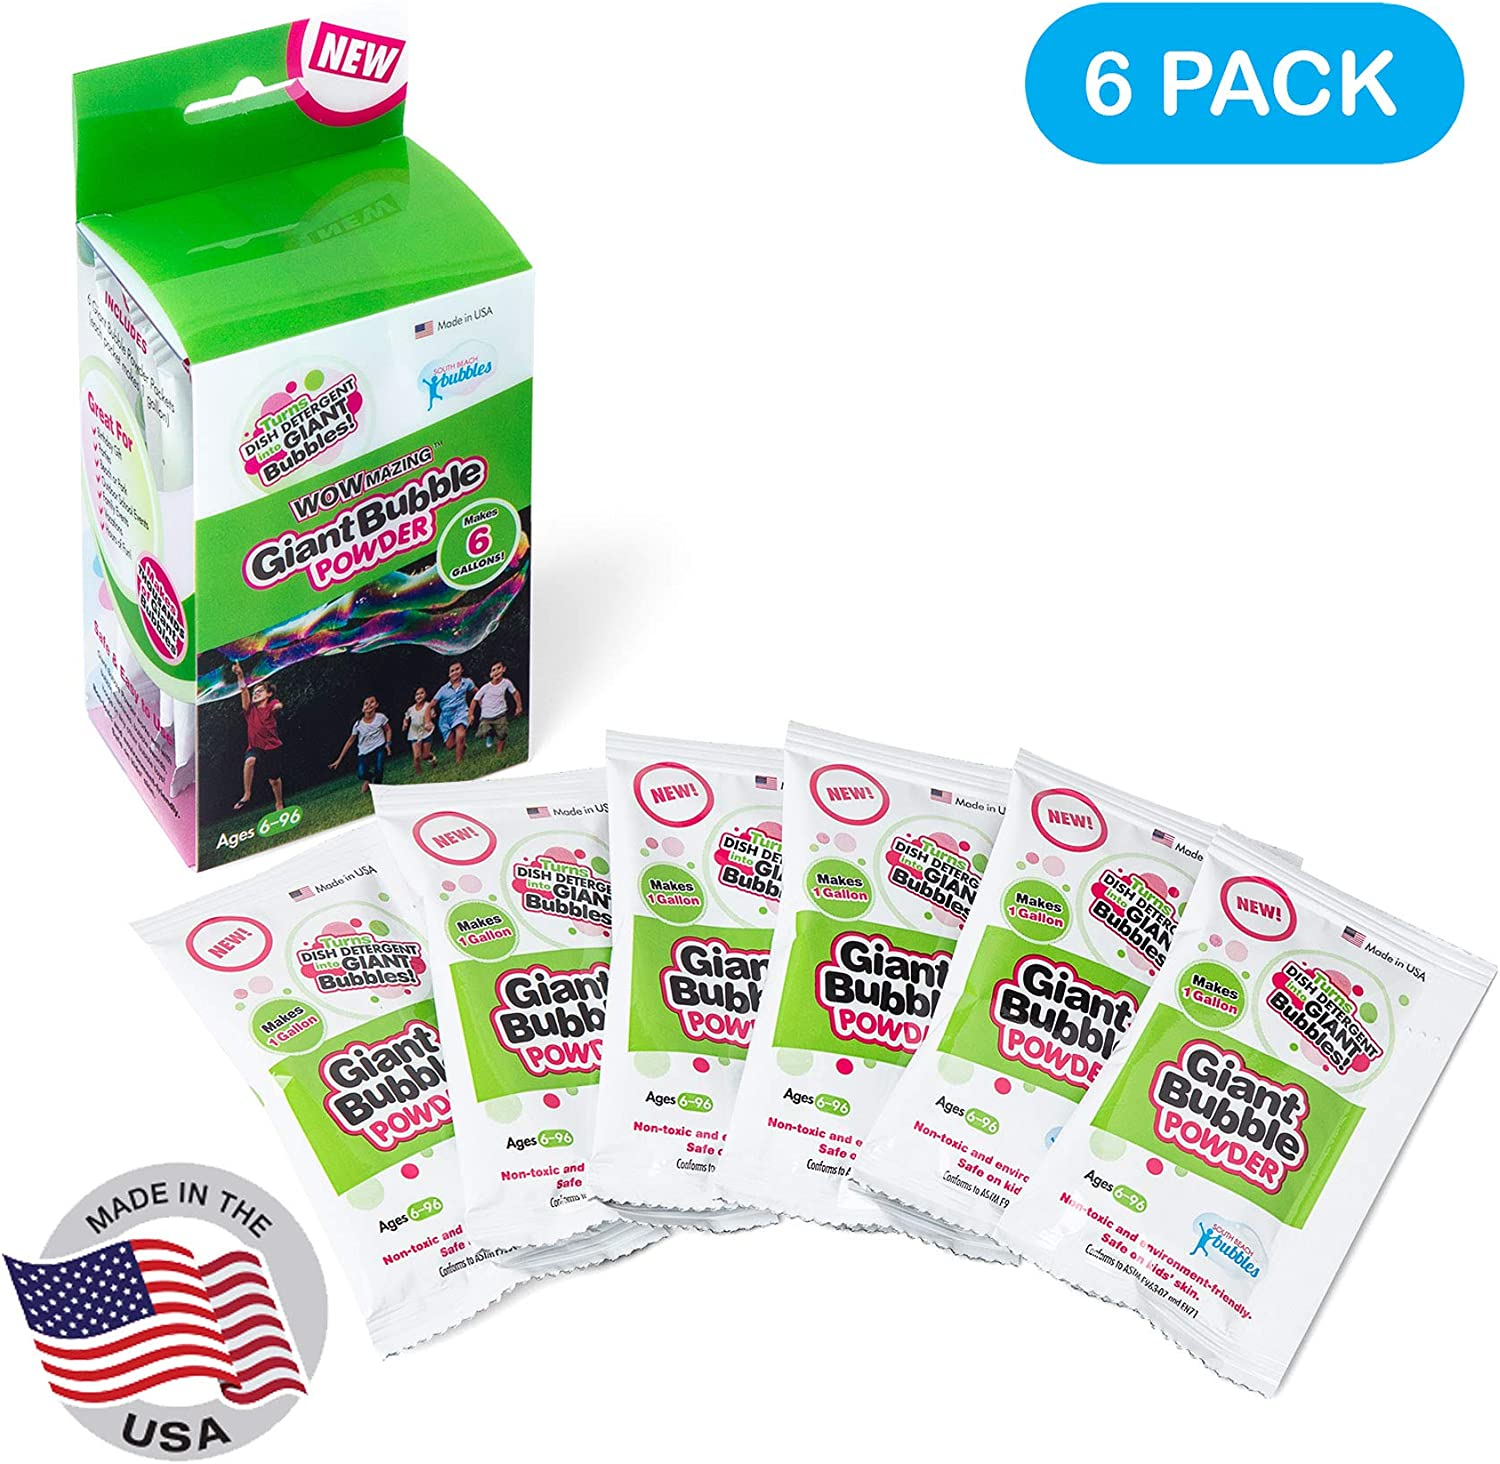 WOWMAZING Giant Bubble Refill Powder Mix - 6 Packets Makes 6 GALLONS | Made in USA | Turns Dish Detergent into Big Bubbles | Non Toxic Safe & Natural | Birthdays, Outdoor Family Fun for Girls and Boys